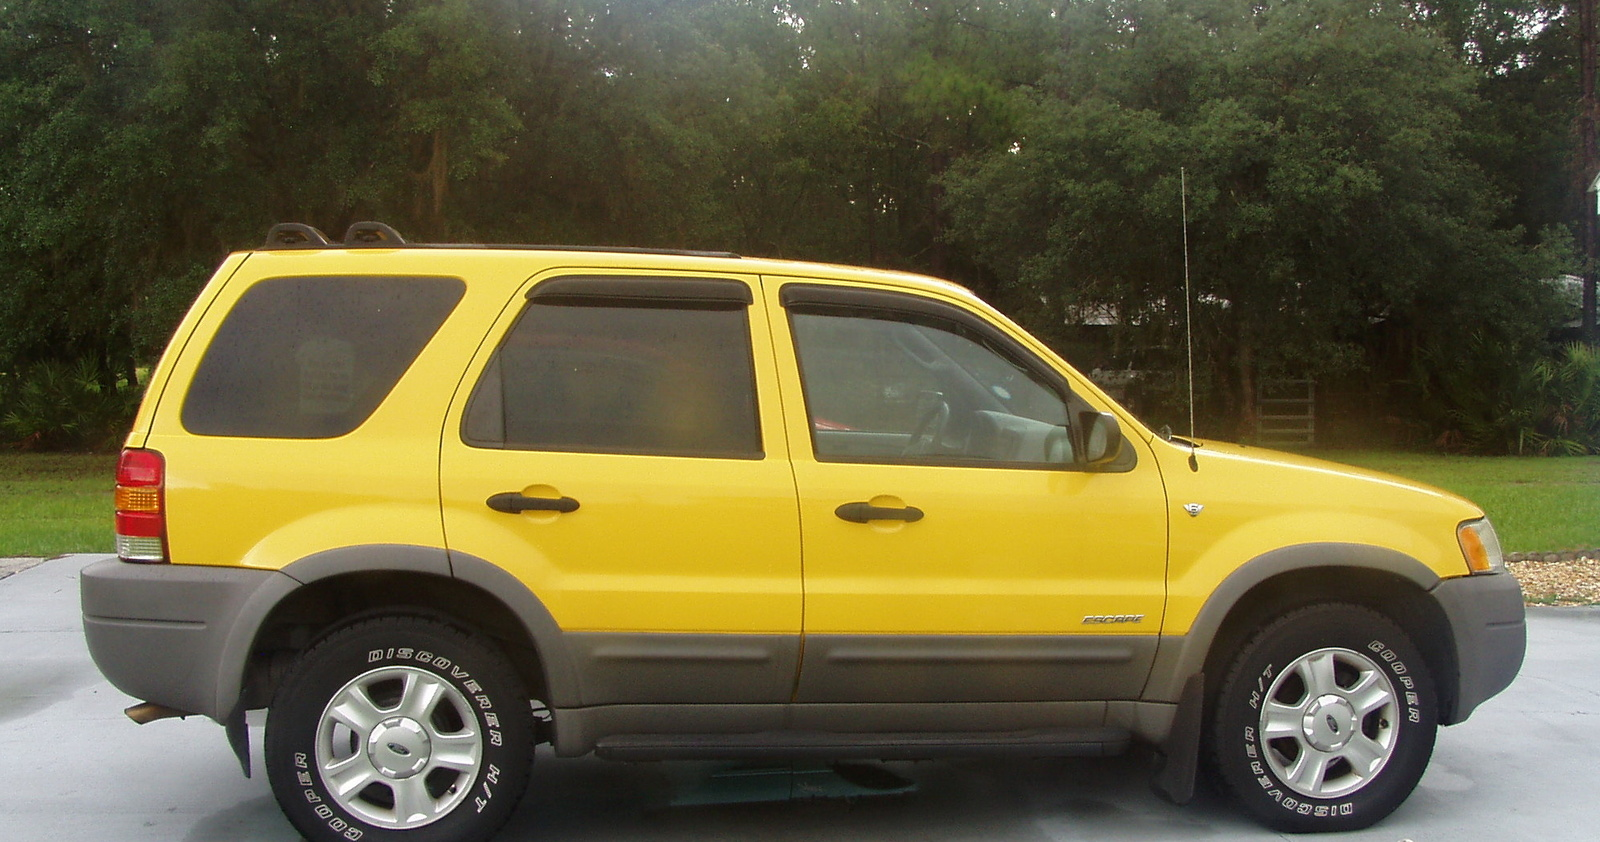 how much does an alternator cost for a 2002 ford escape autos weblog. Black Bedroom Furniture Sets. Home Design Ideas